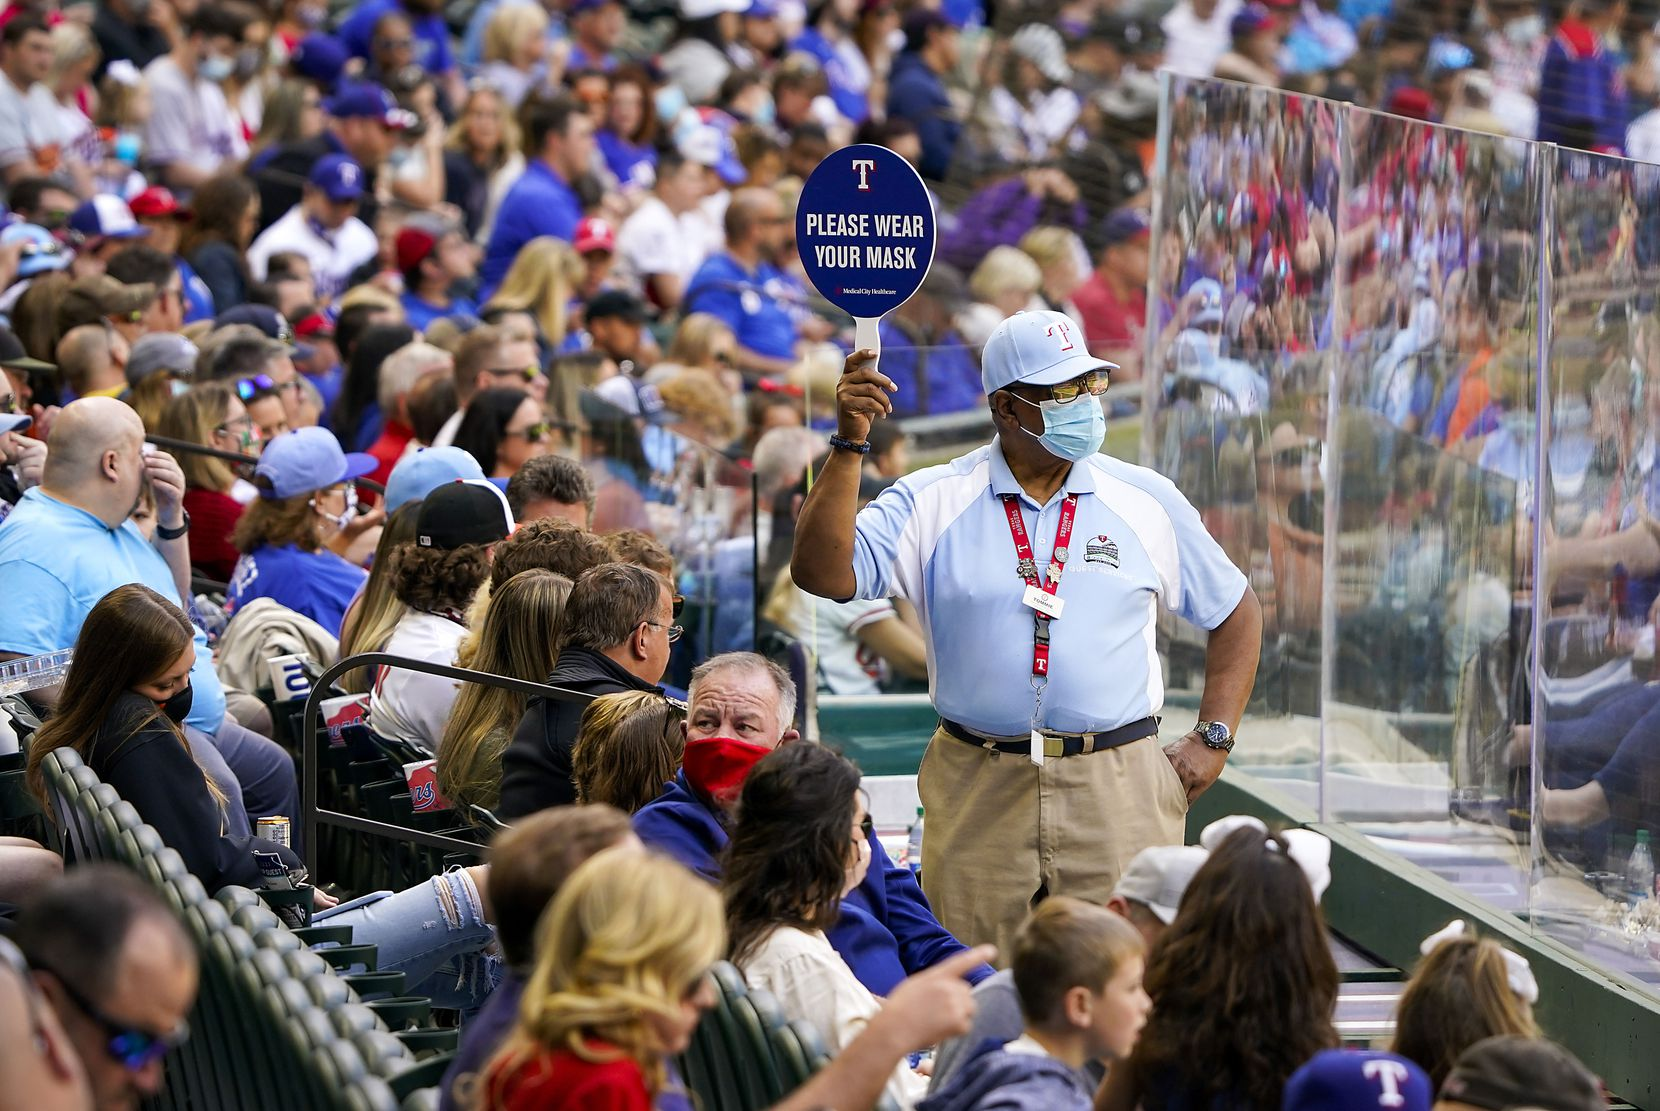 An usher holds a sign encouraging fans to wear face coverings between innings of a game between the Texas Rangers and the Baltimore Orioles at Globe Life Field on Sunday, April 18, 2021.